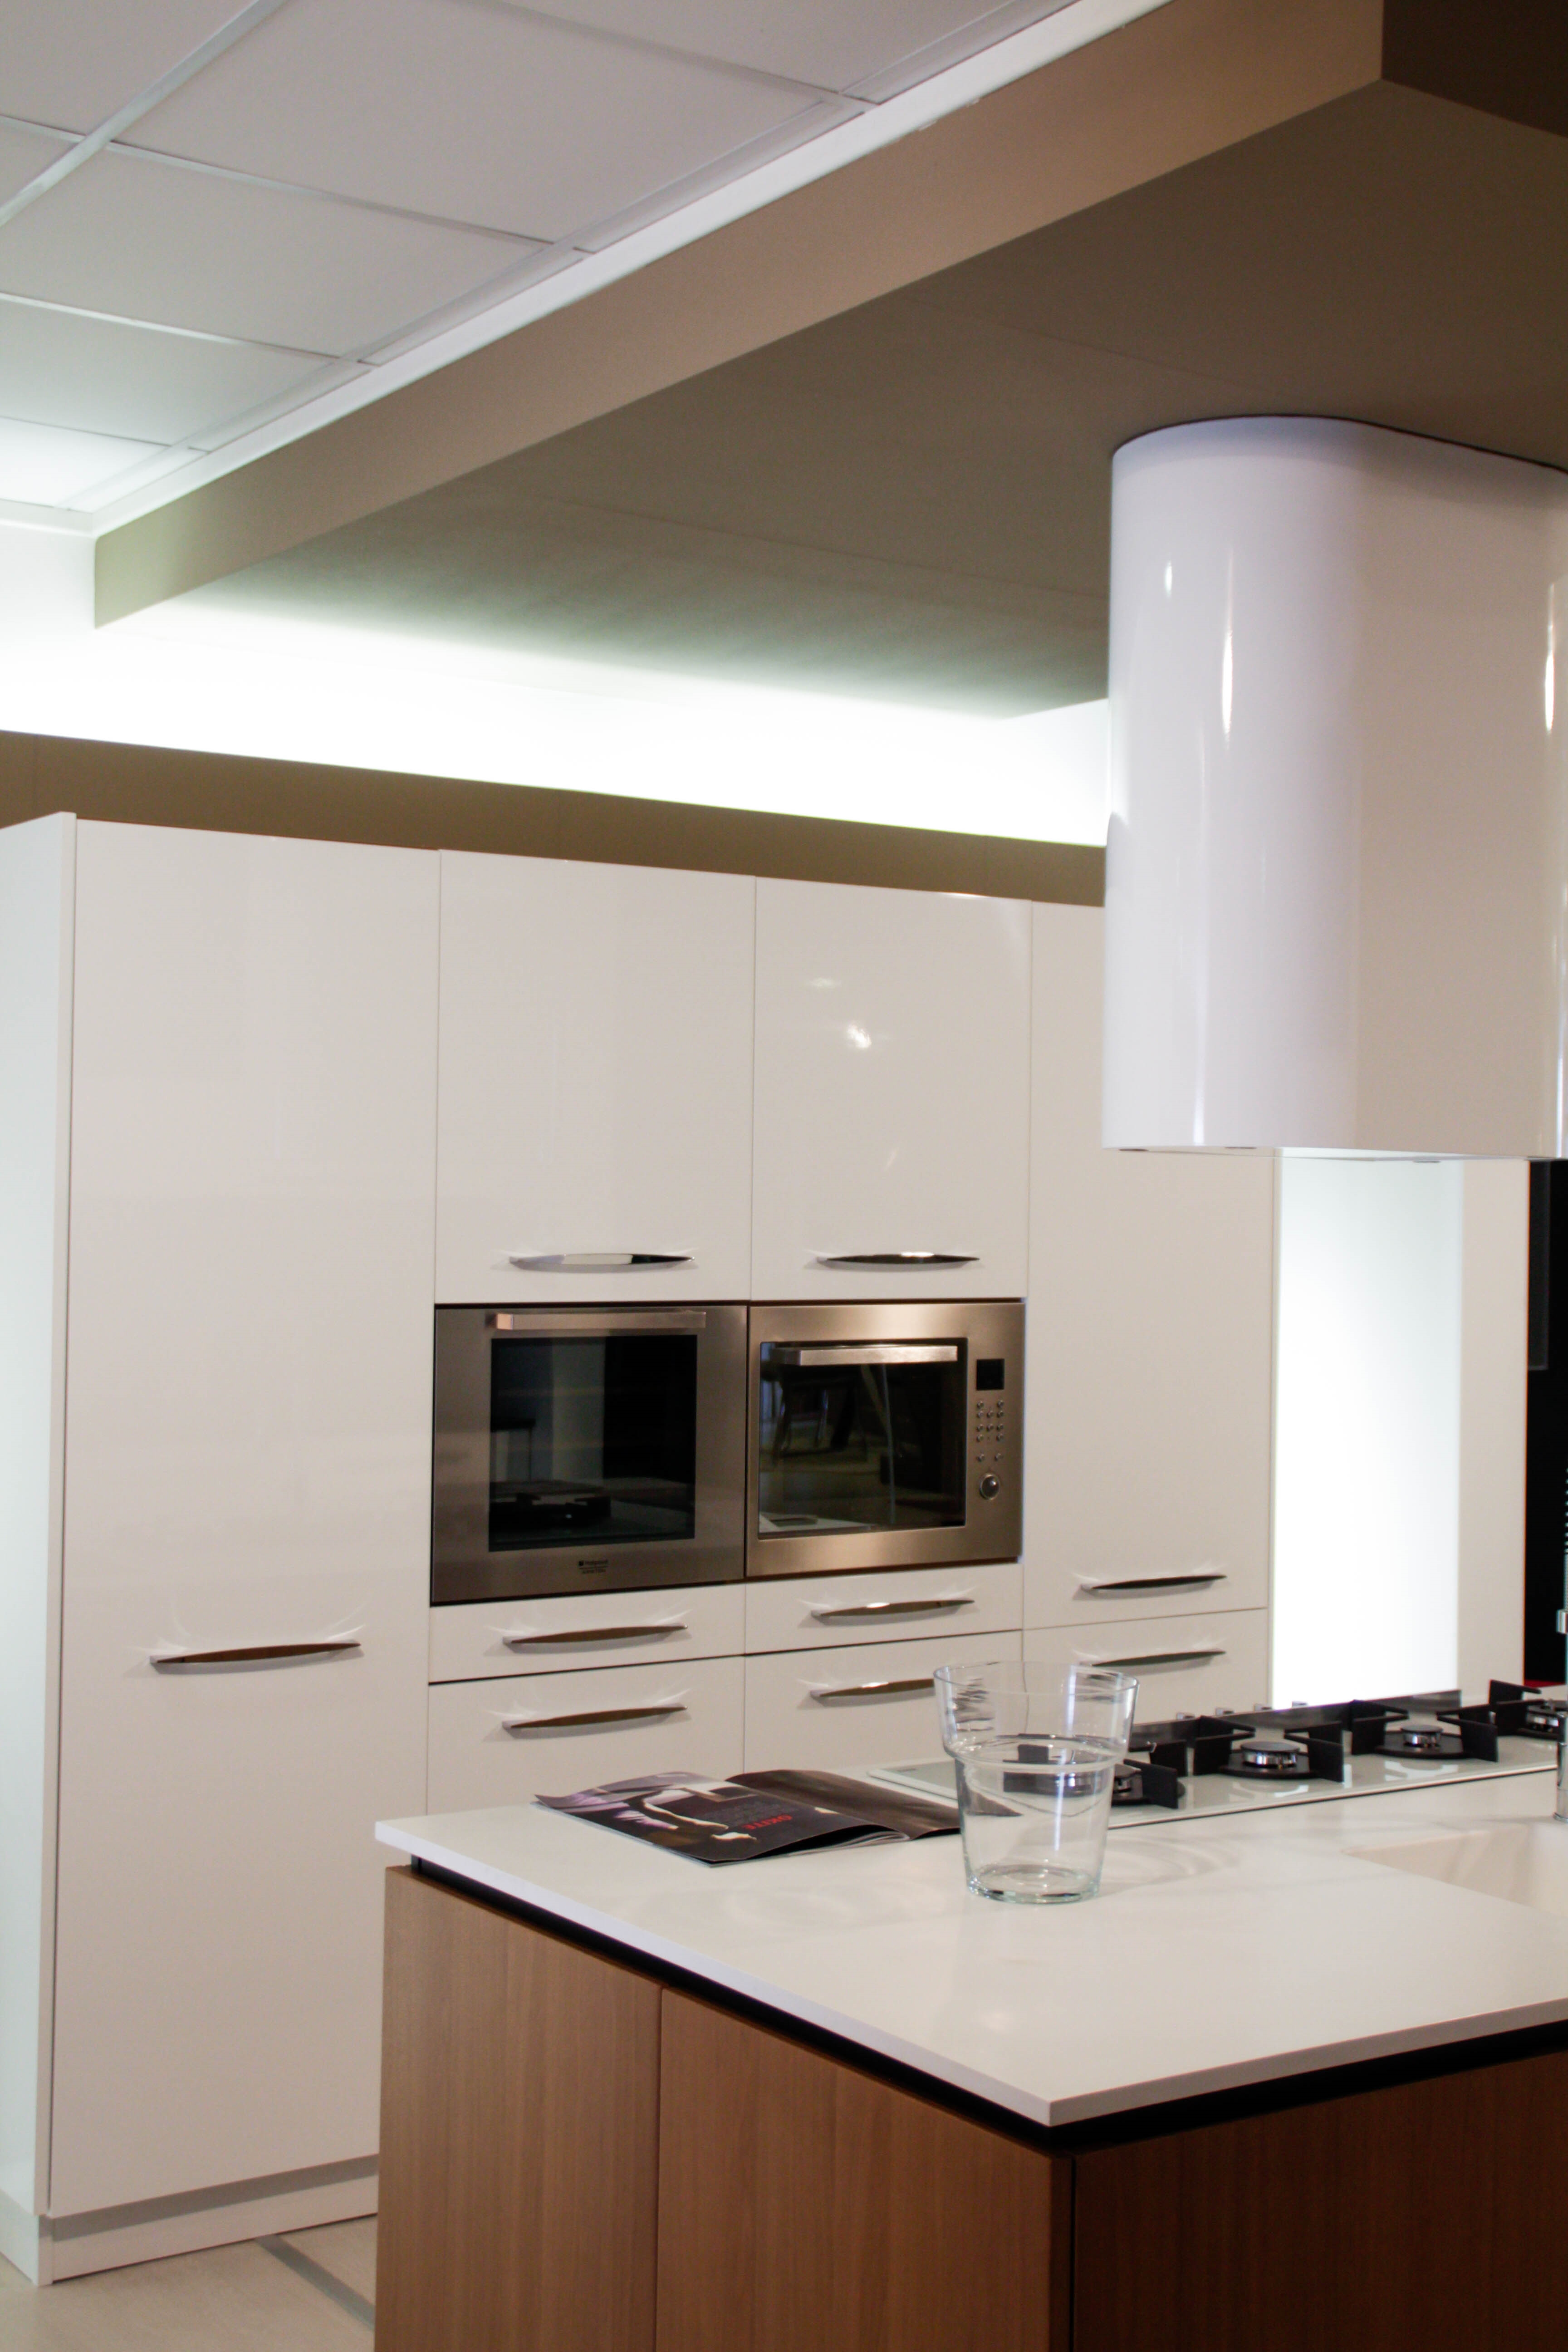 Cucine verona offerte interesting outlet snaidero with for Cucine offerte outlet